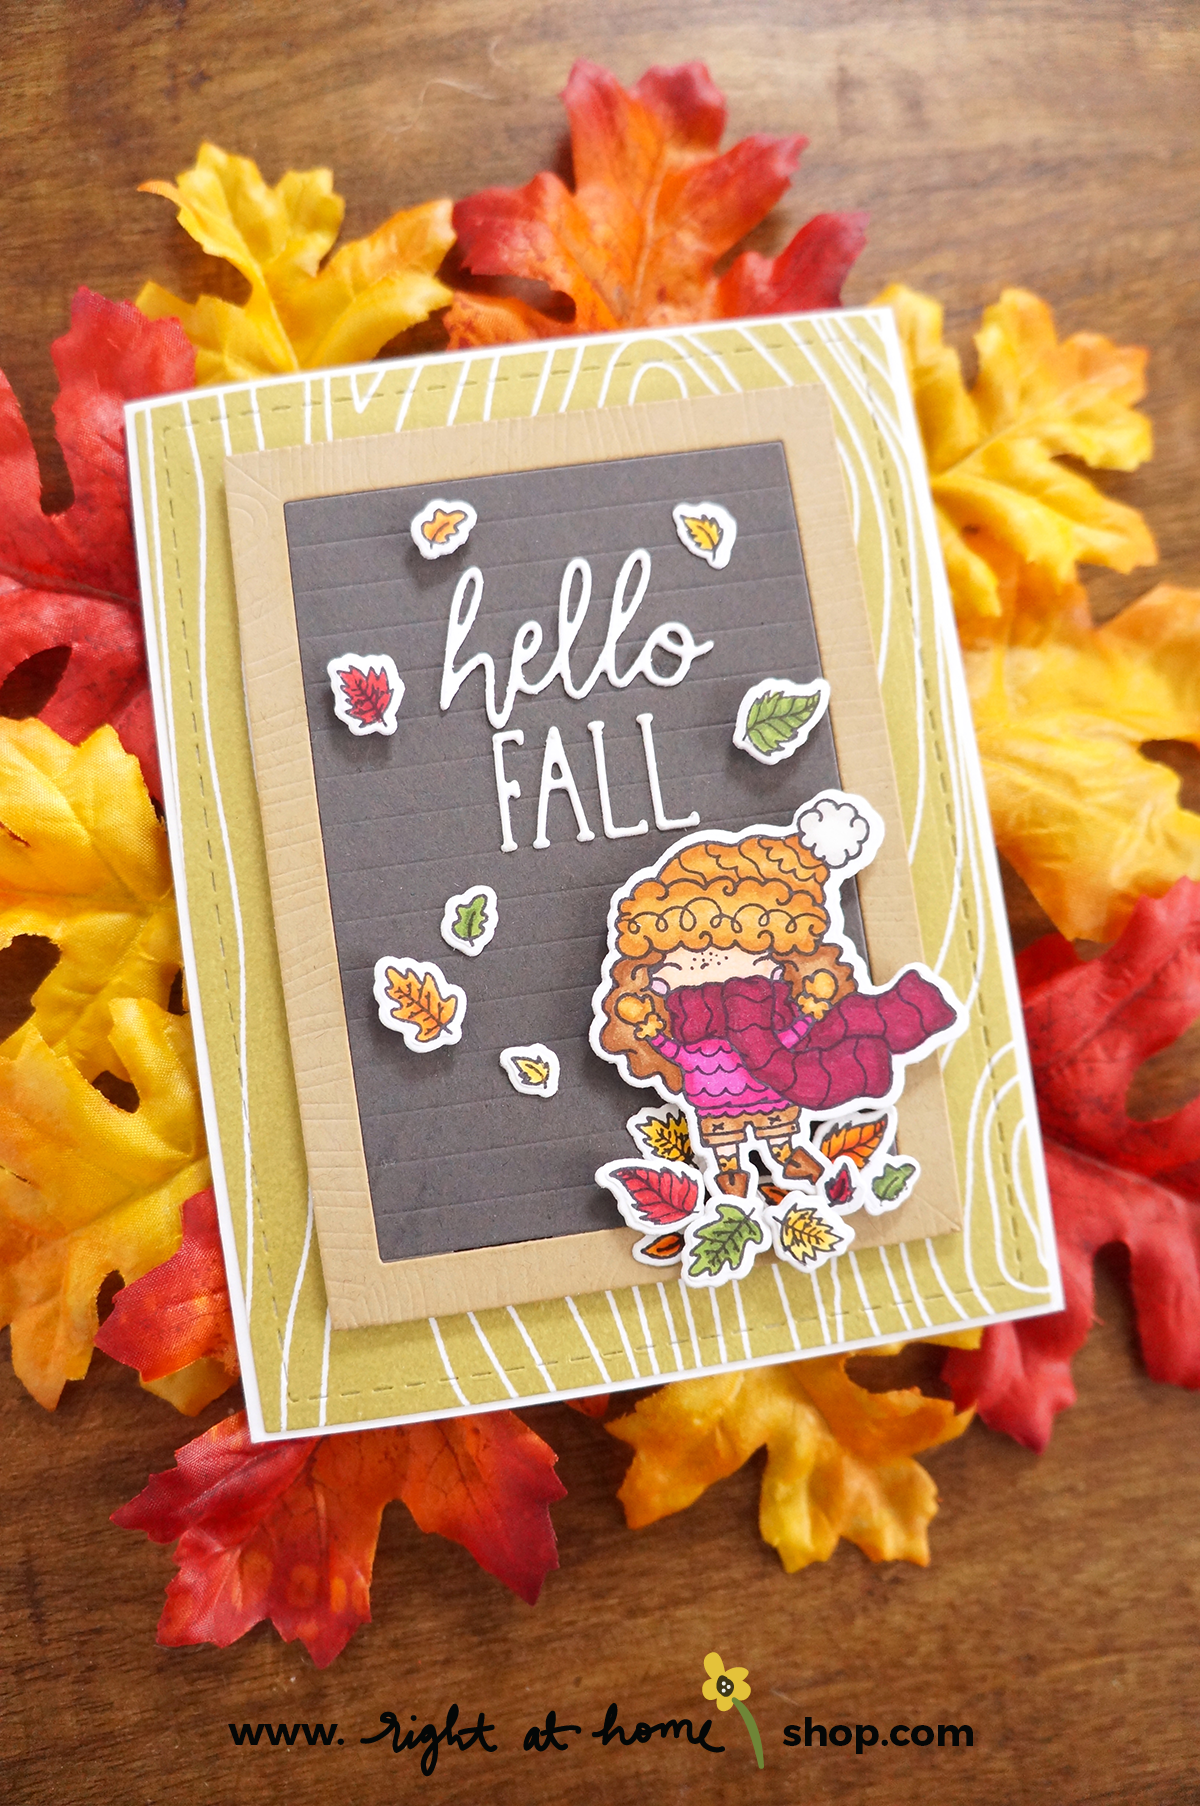 Hello Fall Pumpkin Spice Season Letterboard Card // rightathomeshop.com/blog